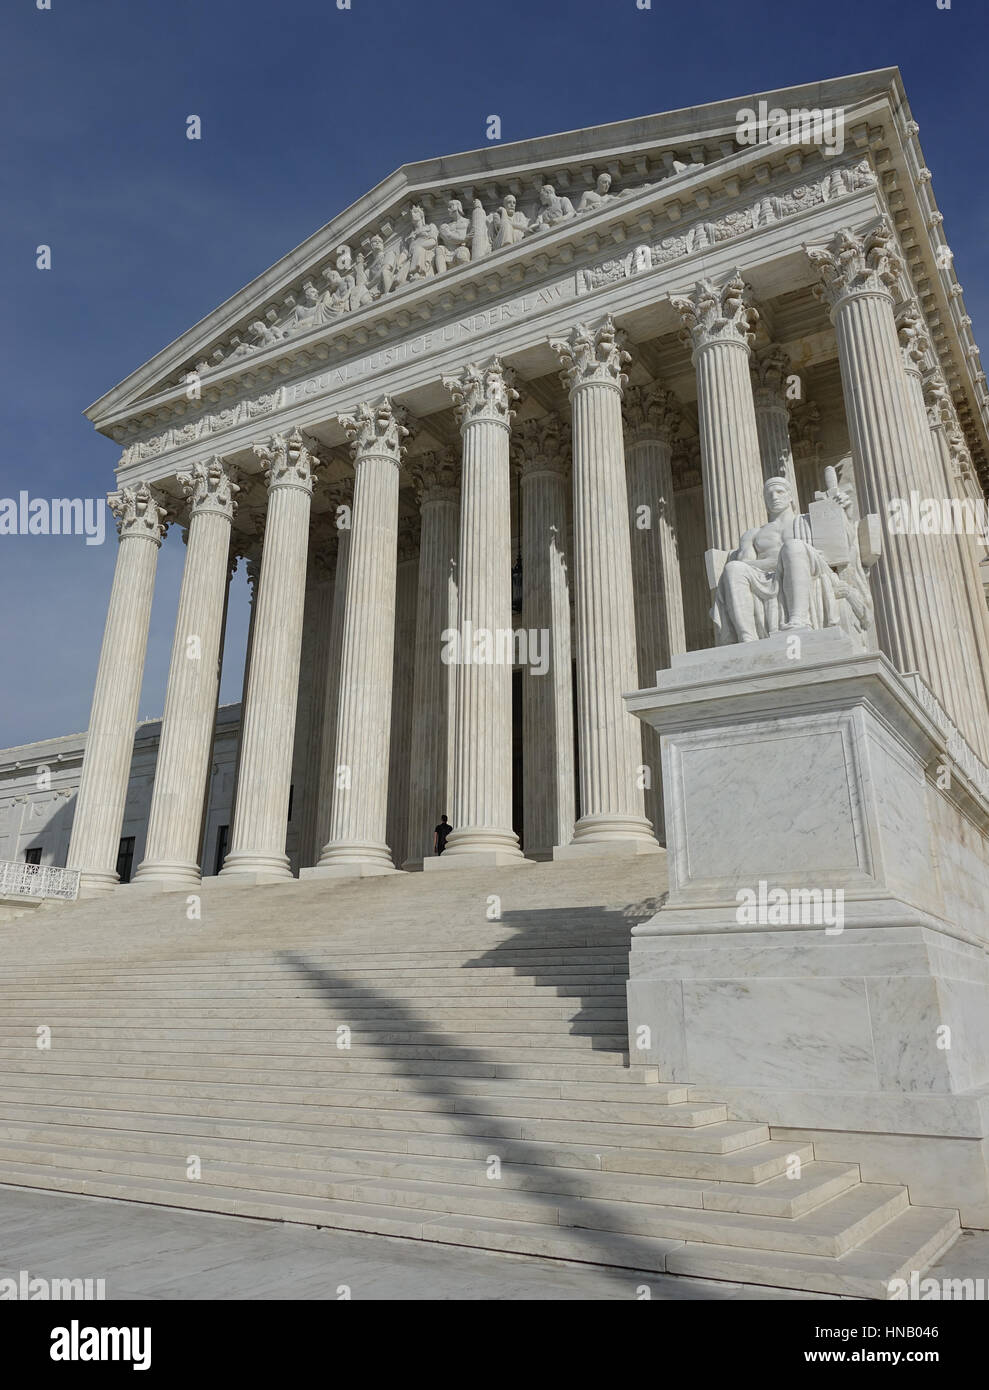 U.S. Supreme Court Building low angle.  Authority of Law statue; flag shadow on steps. - Stock Image